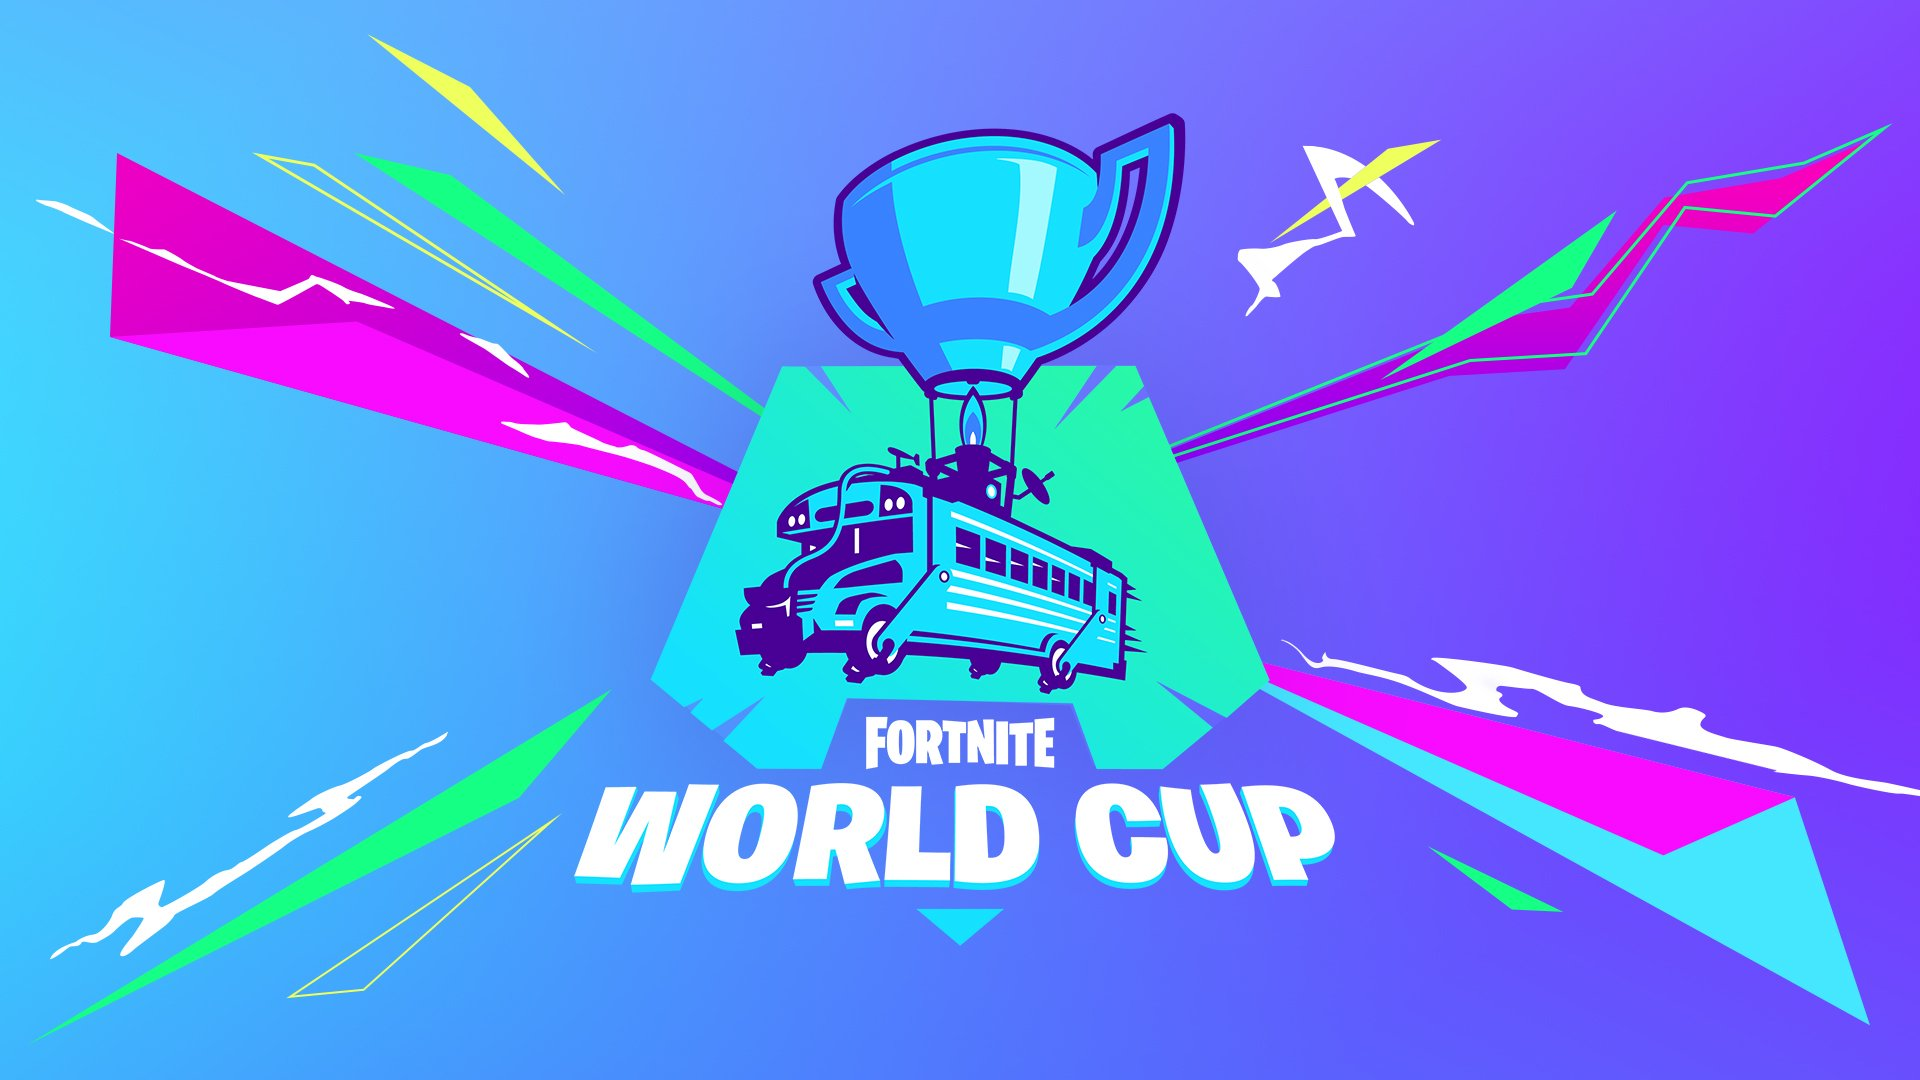 Official ruling disqualifies XXiF from Fortnite World Cup Finals